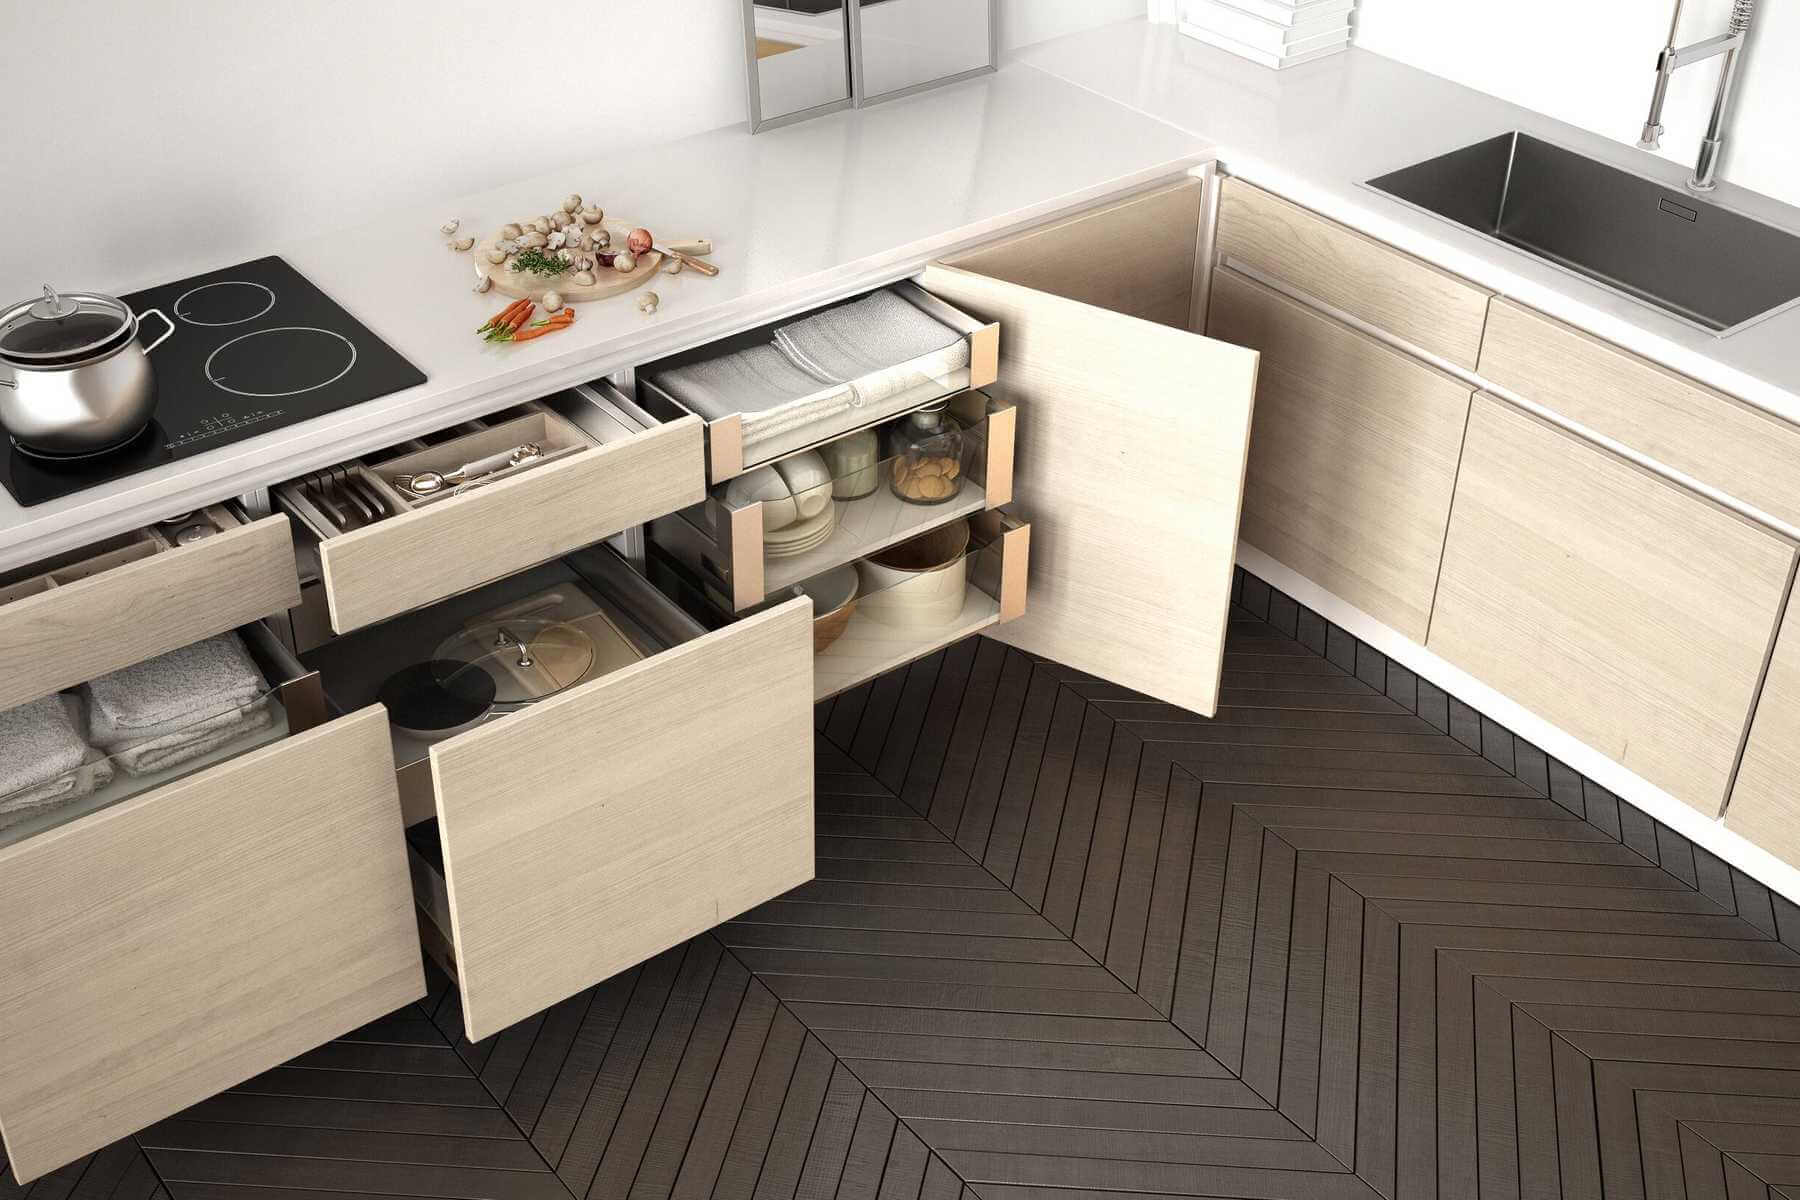 Stylish Home Kitchen Drawer Design that Solve Storage Problem